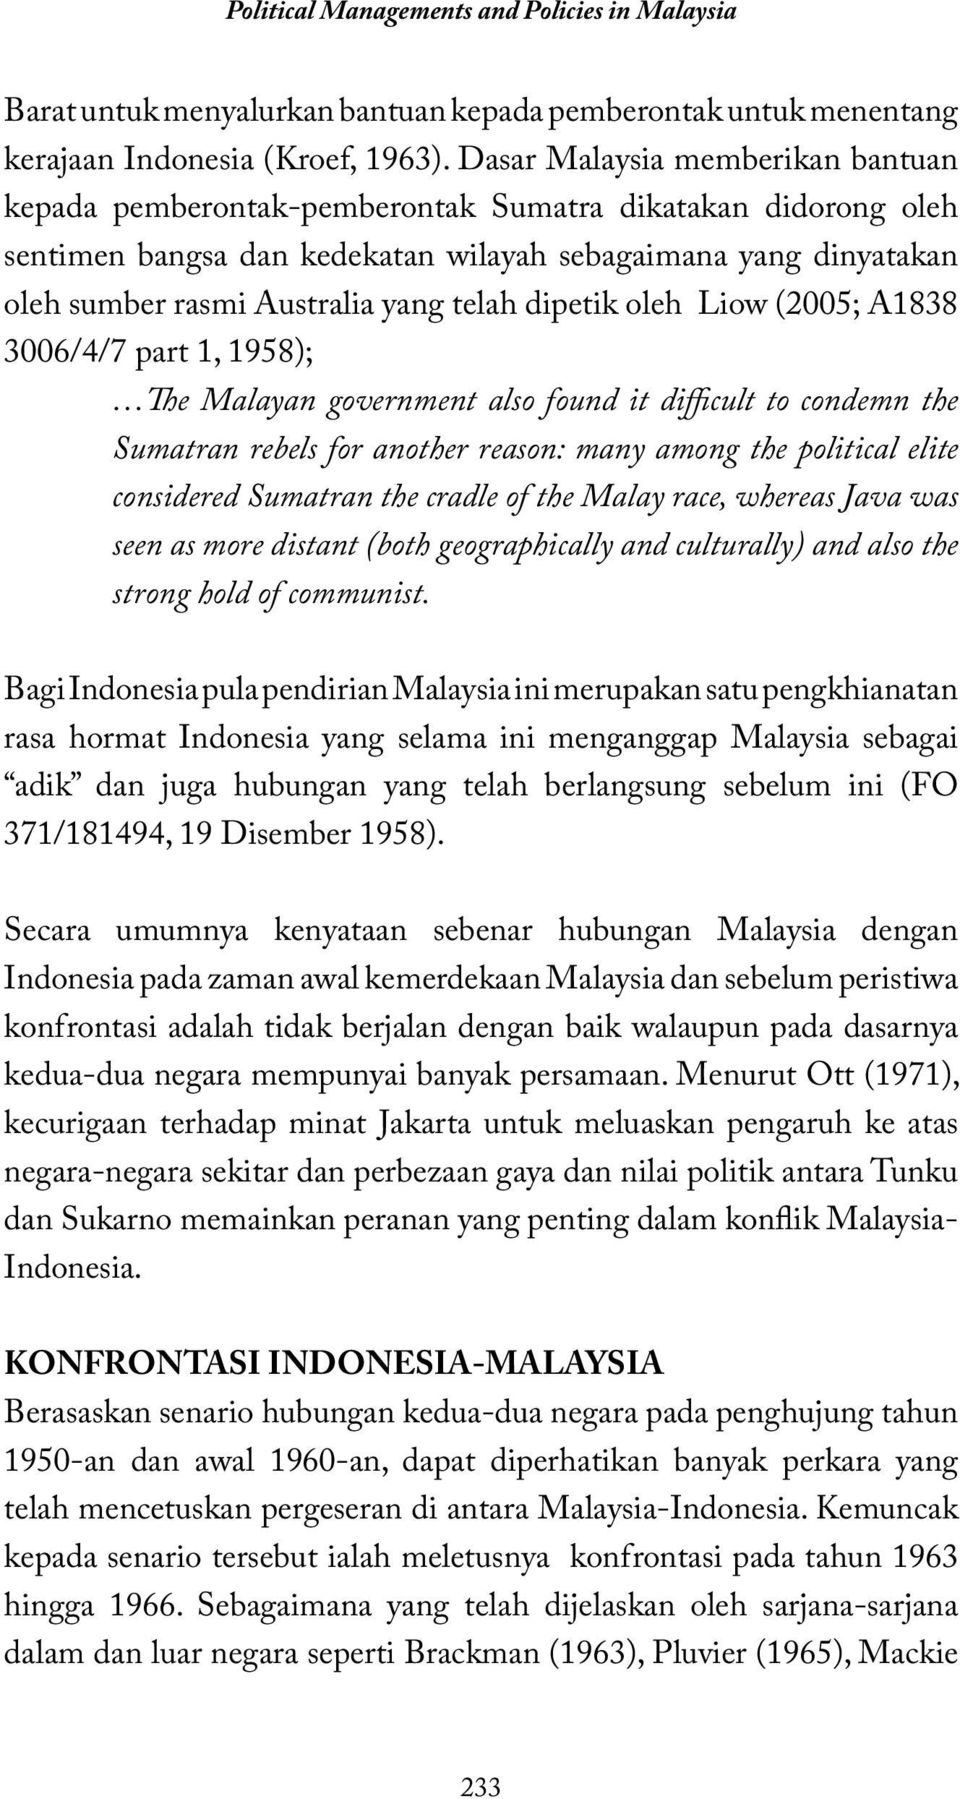 telah dipetik oleh Liow (2005; A1838 3006/4/7 part 1, 1958); The Malayan government also found it difficult to condemn the Sumatran rebels for another reason: many among the political elite